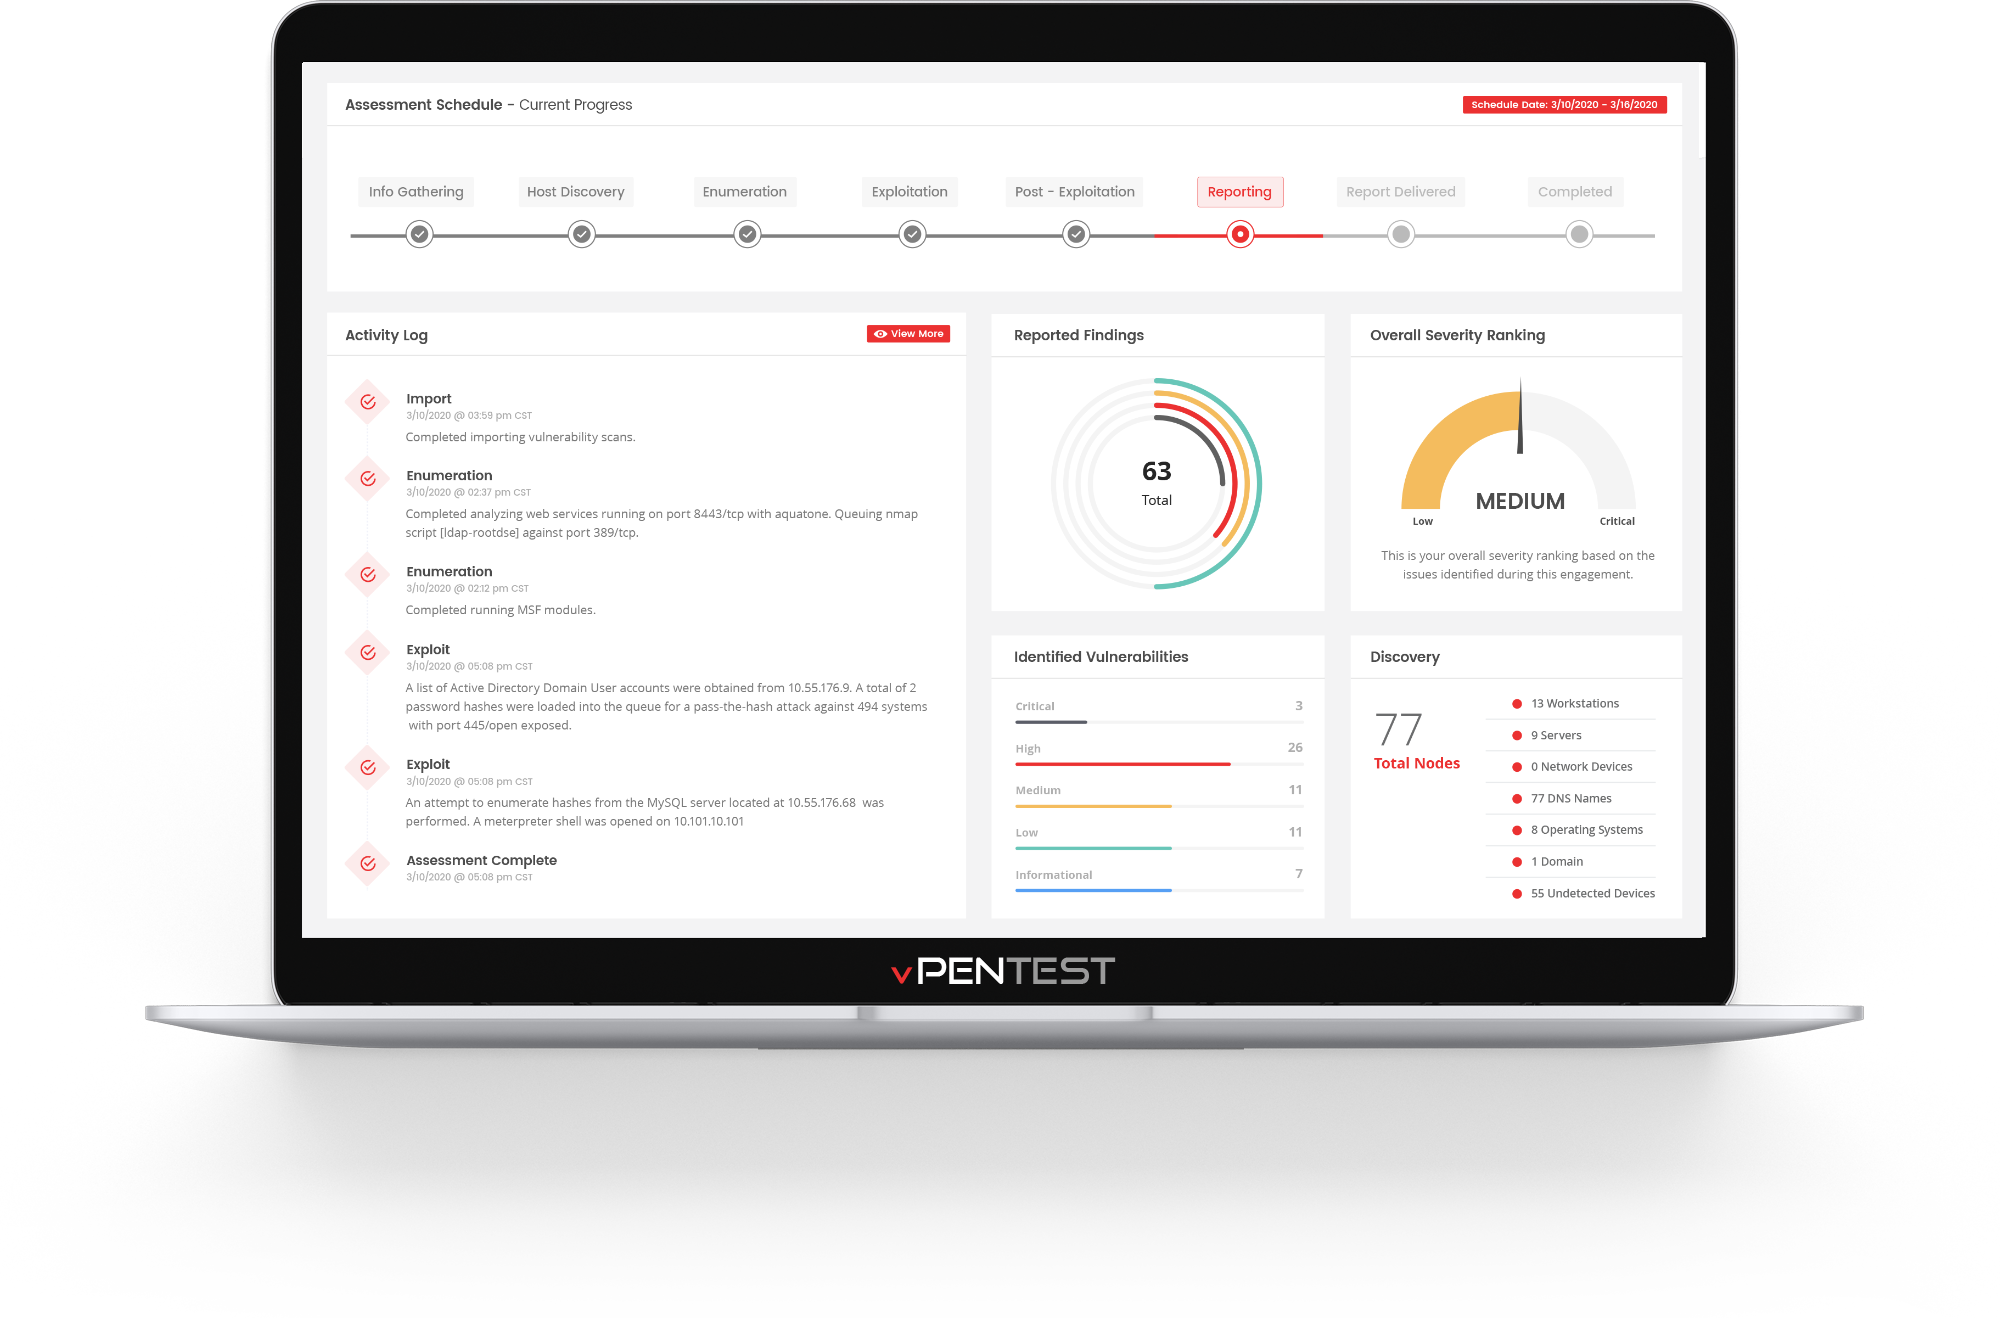 vpentest-dashboard-vonahi-2020.png